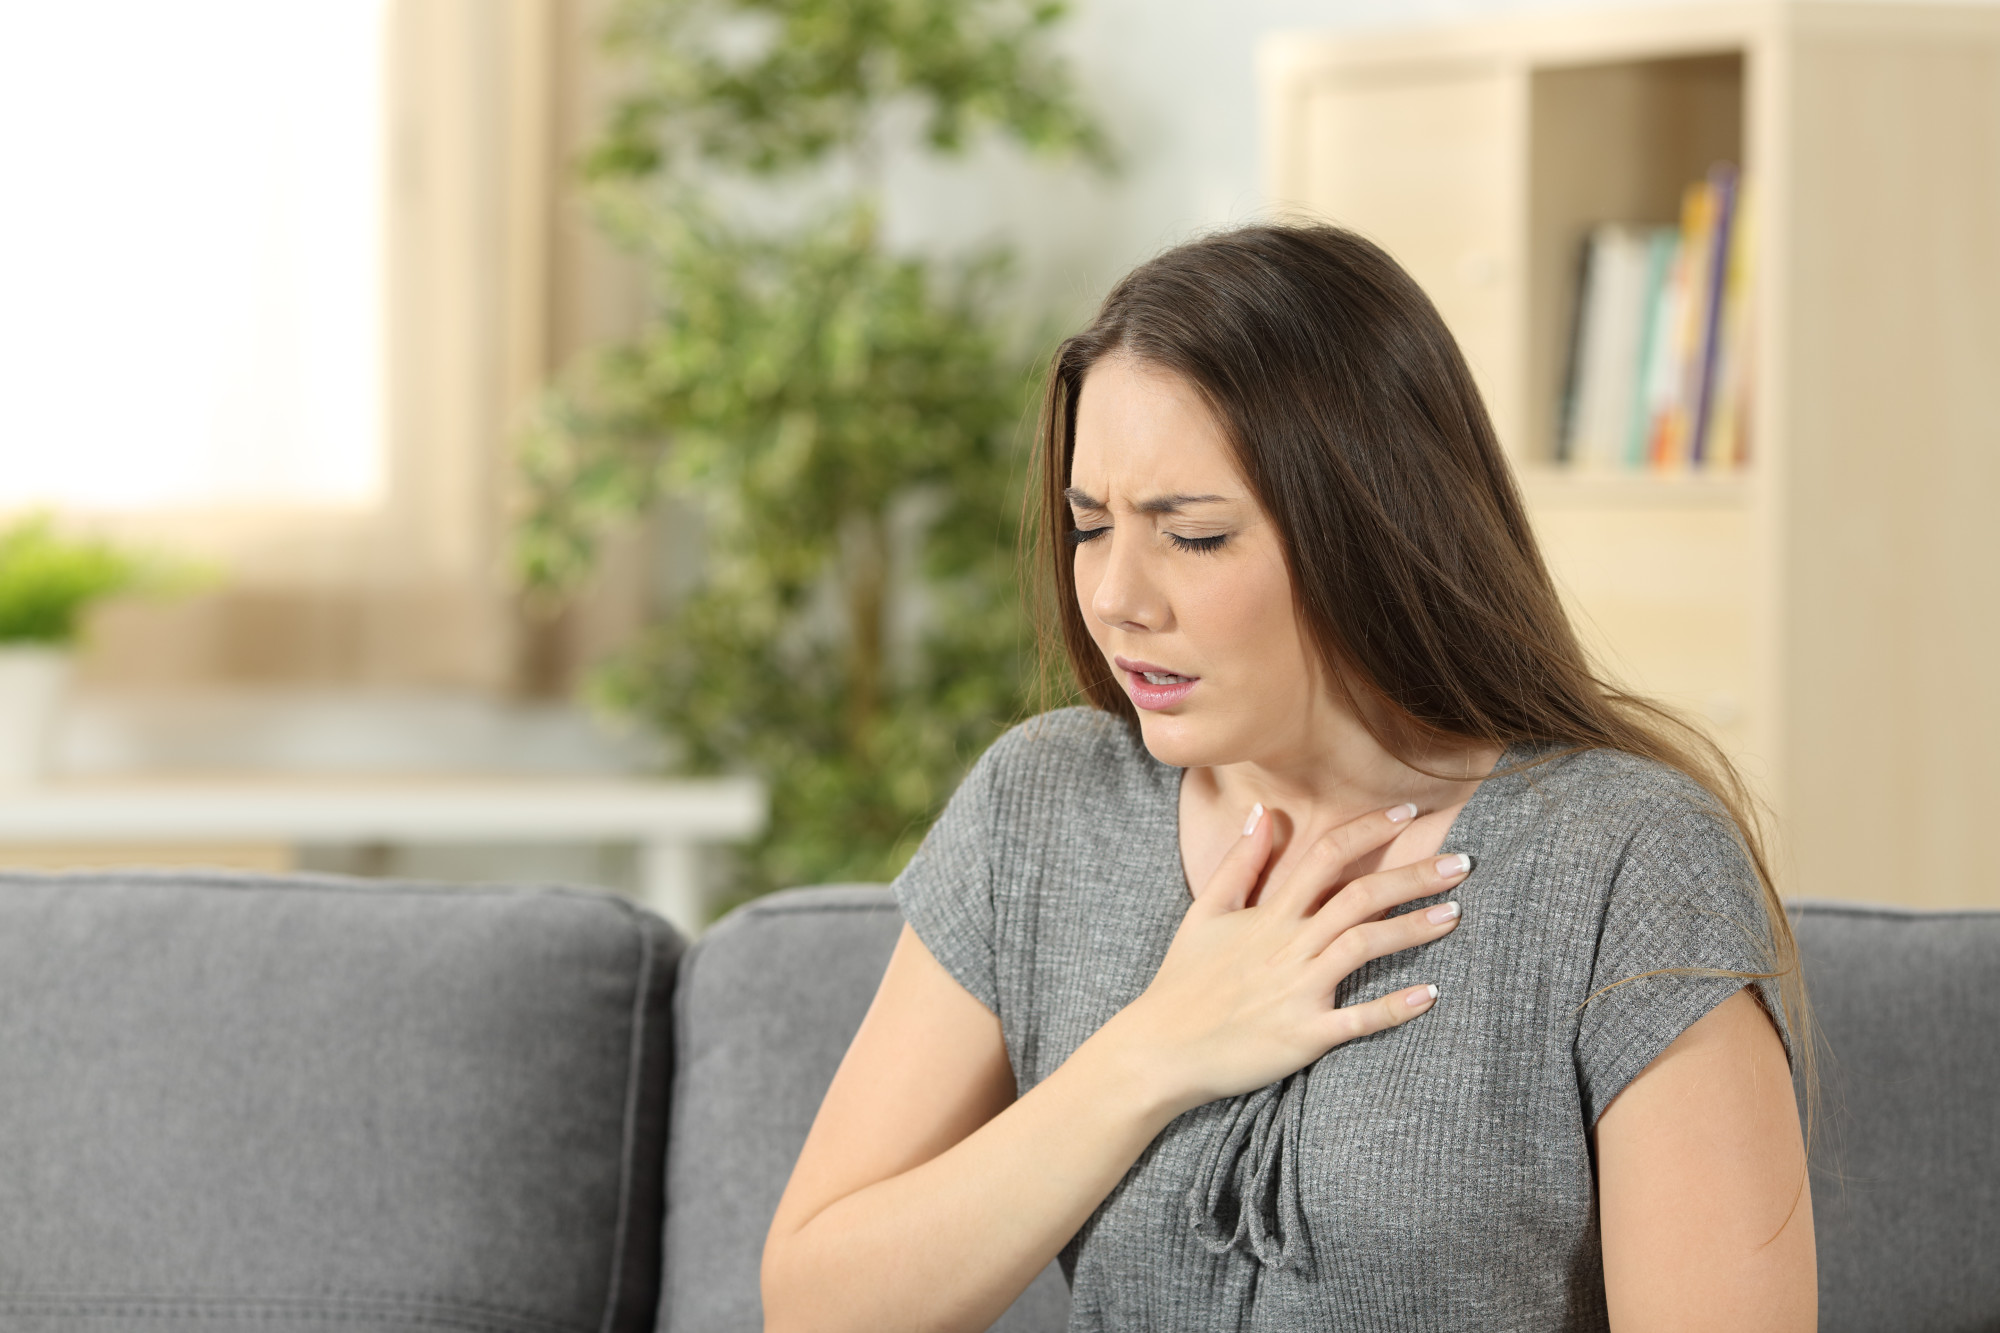 7 Symptoms of Having Poor Air Quality in Your Home